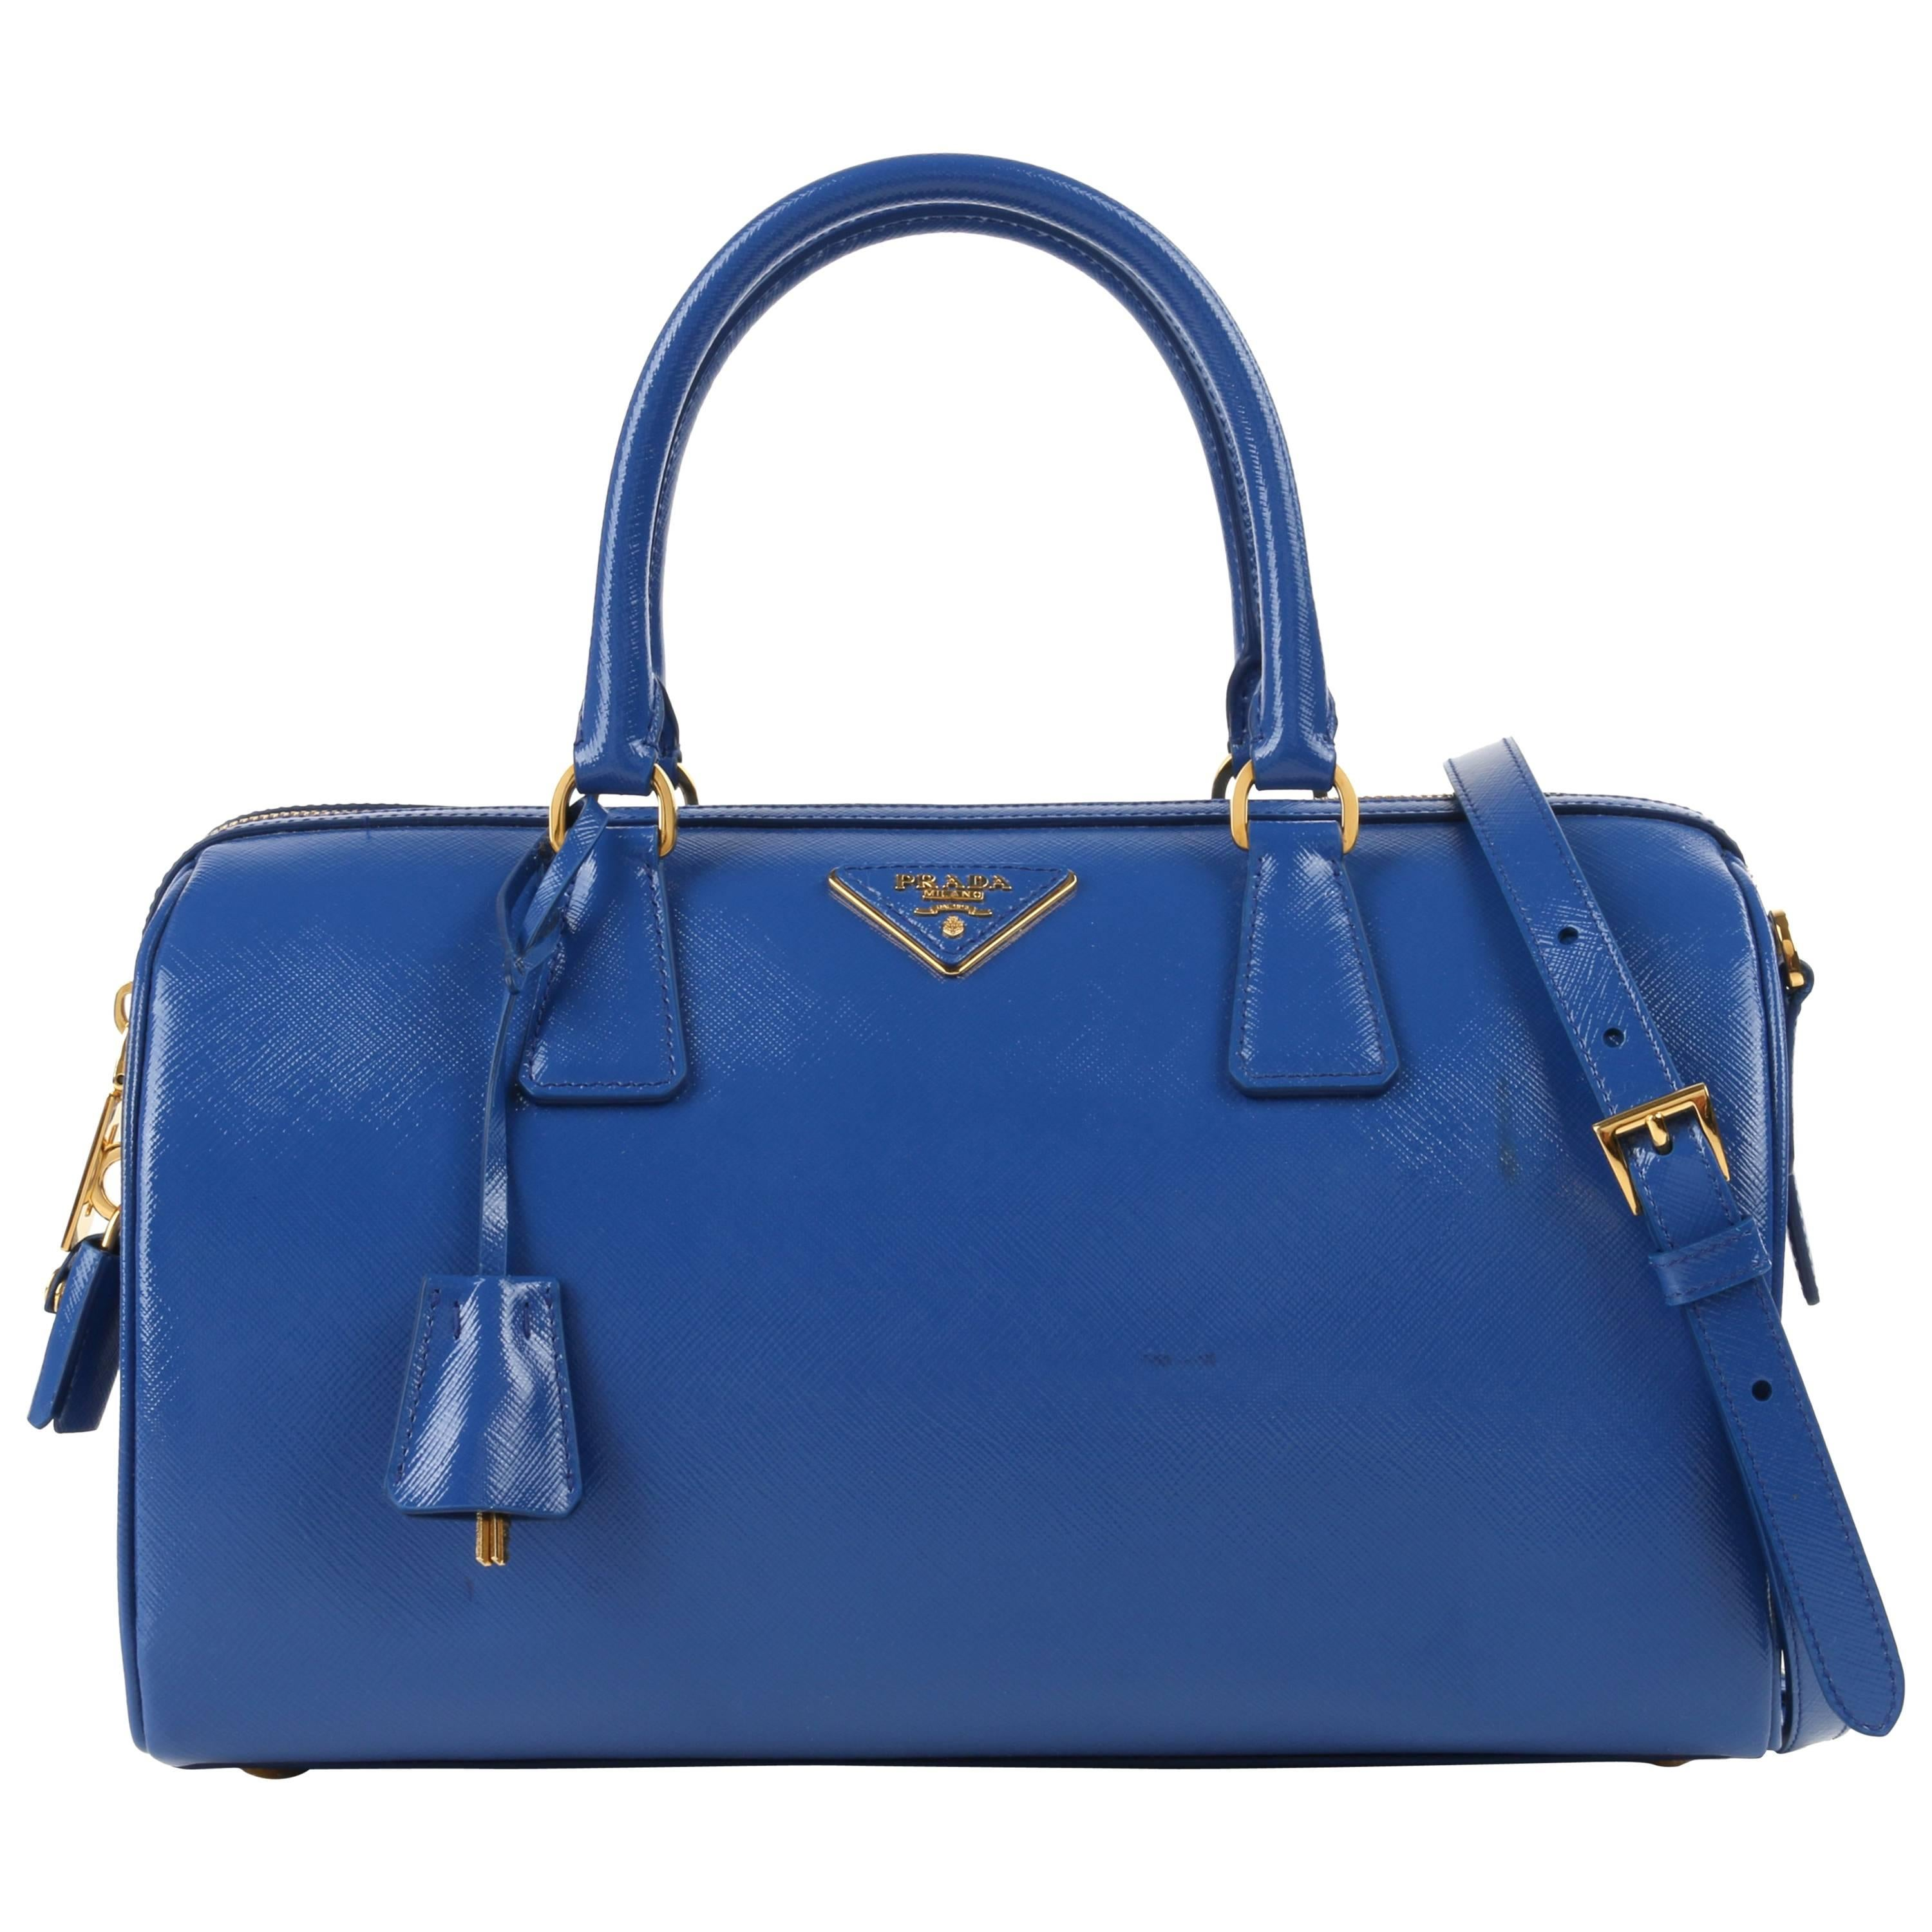 PRADA S/S 2012 Blue Saffiano Vernice Patent Leather Convertible Boston Bag Purse